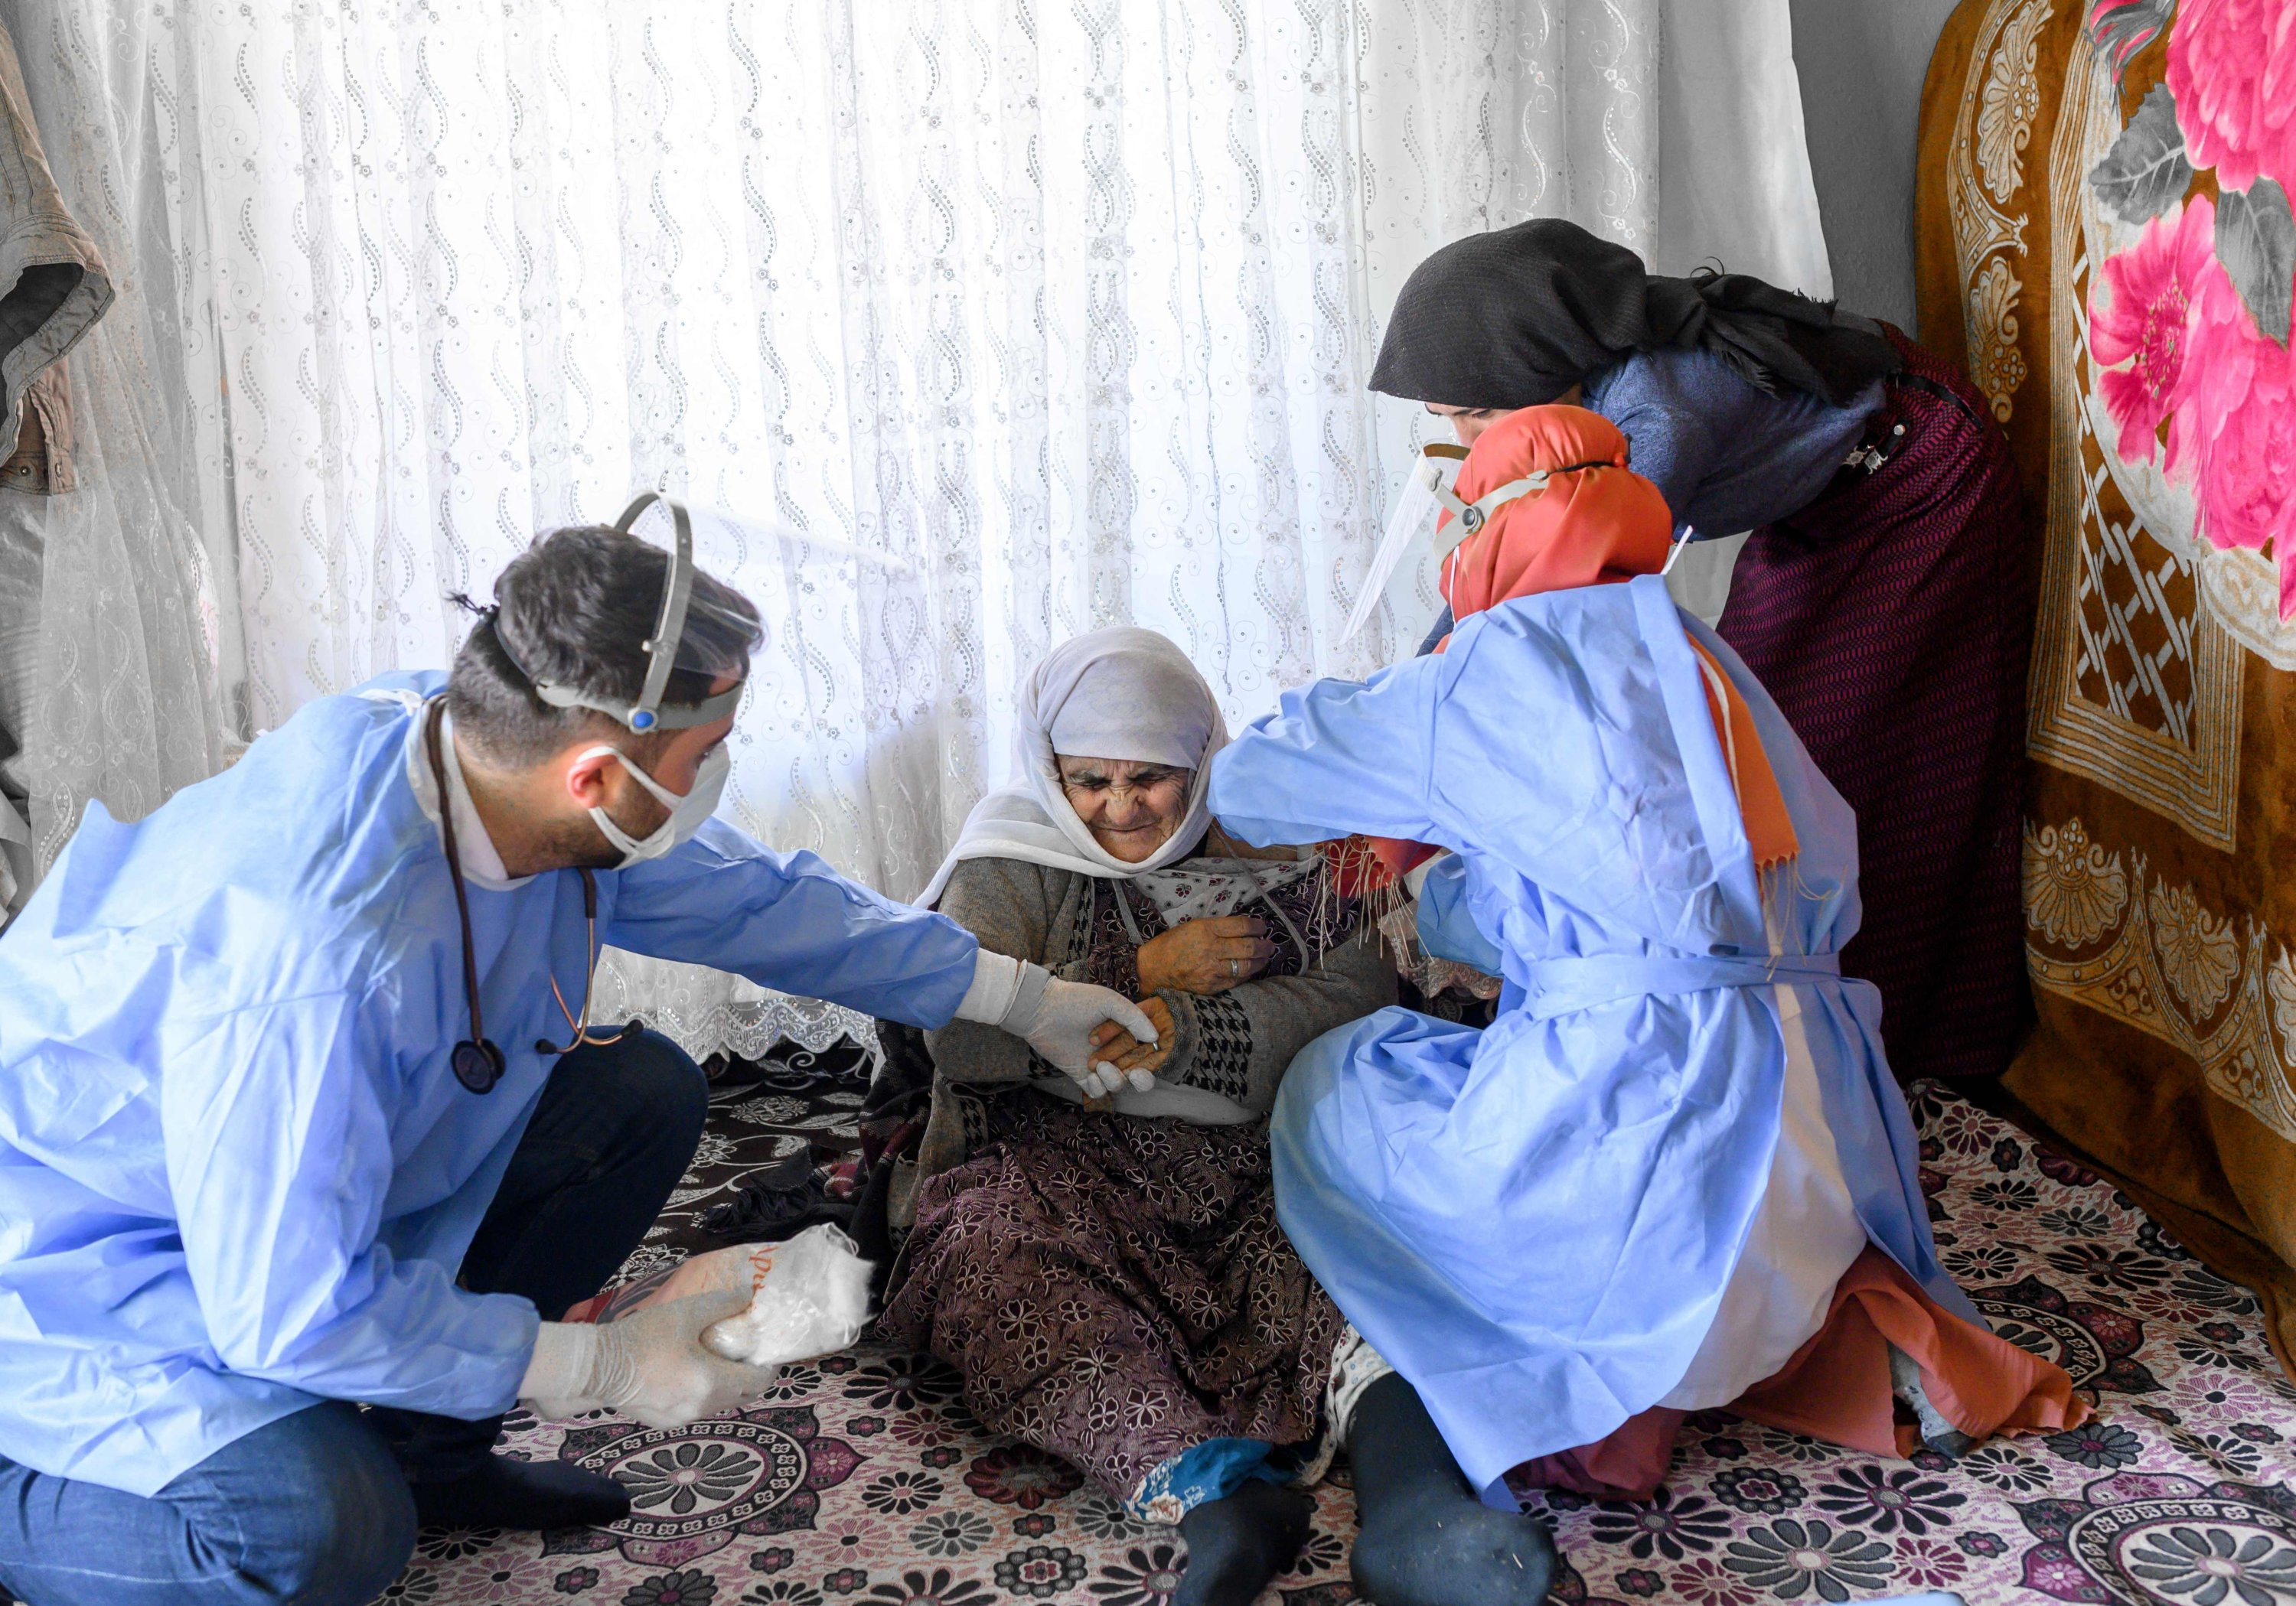 Berfo Arsakay (C), 101 years old, receives a COVID-19 vaccine from nurse Yıldız Ayten (R) from the Bahçesaray public hospital vaccination team, in the village of Güneyyamaç in Van province, eastern Turkey, Feb. 15, 2021. (AFP Photo)